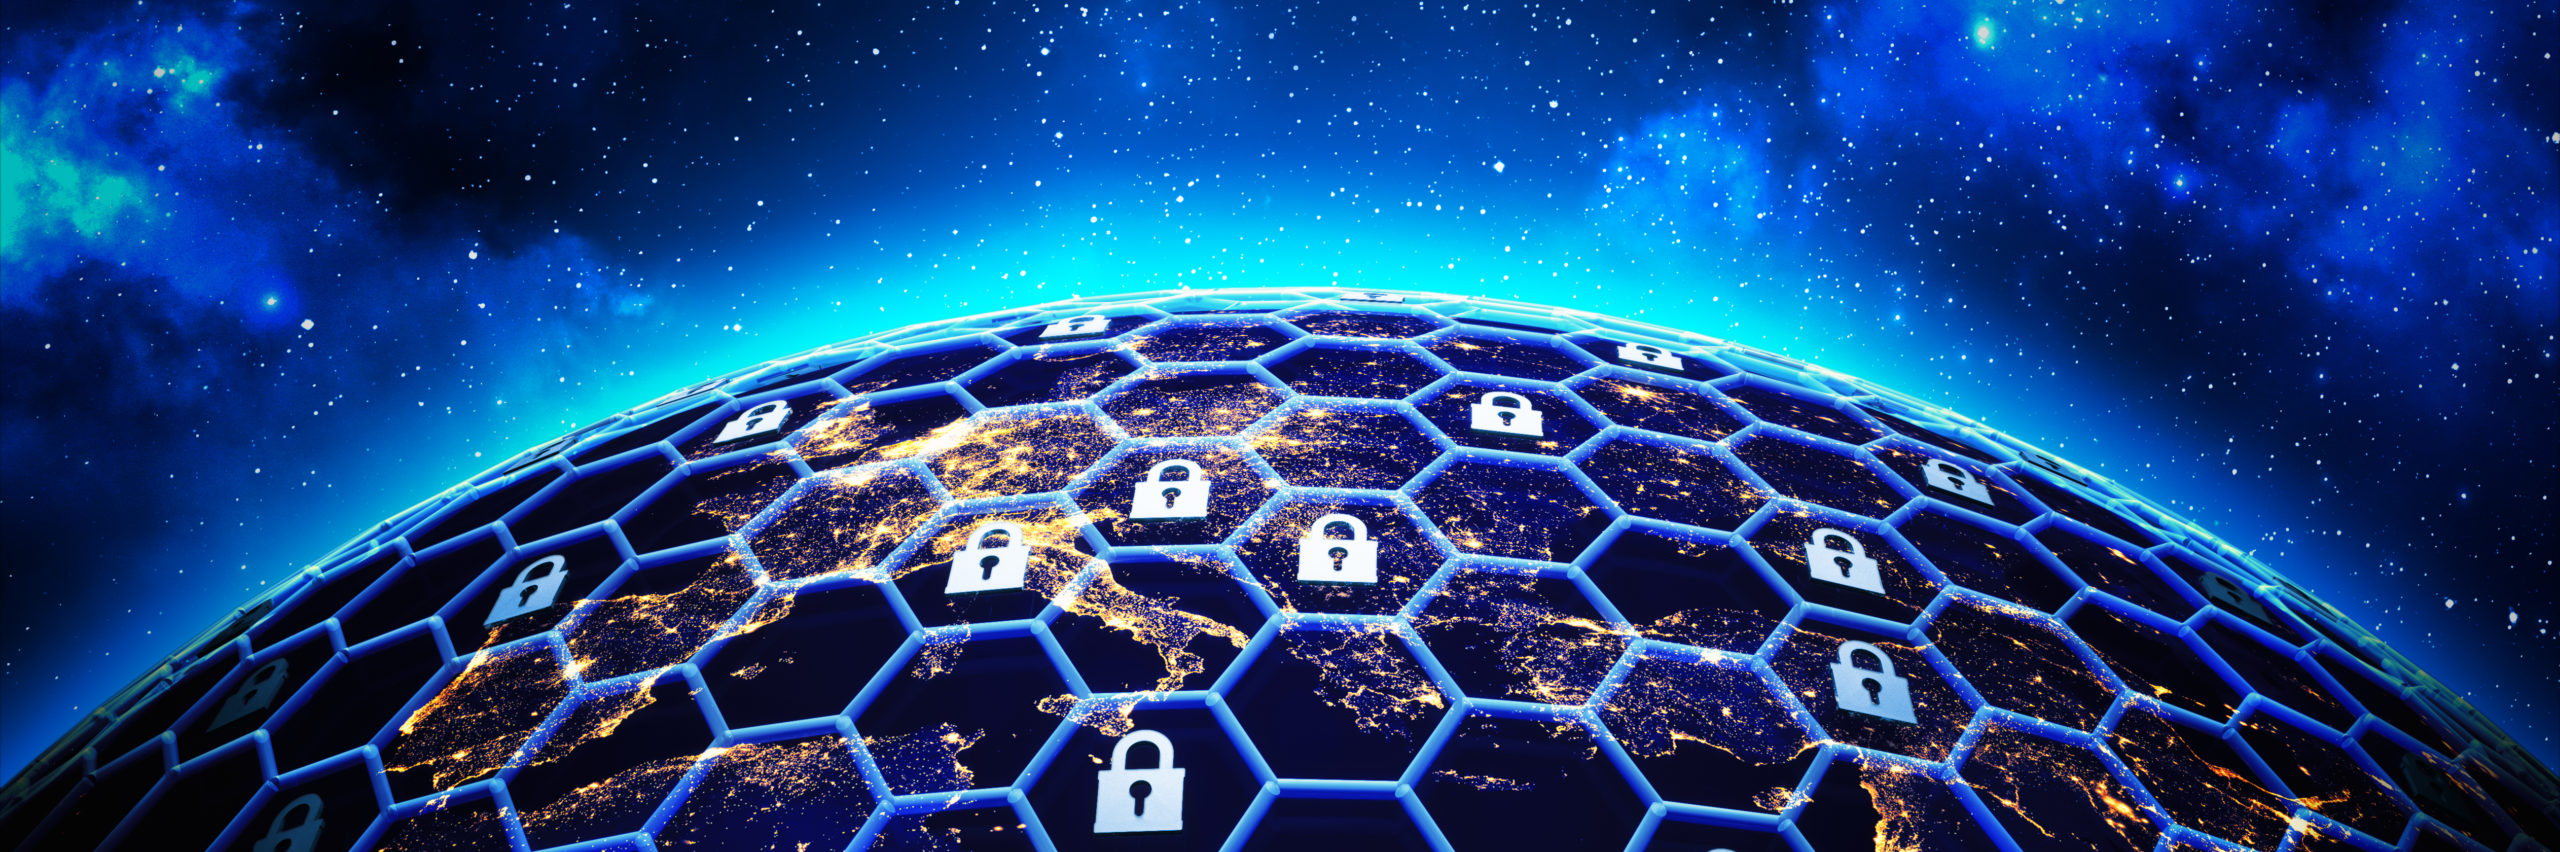 Global network security and data protection concept, a grid of cells with a lock symbol in some of them around the Earth globe on deep blue space background, 3d illustration - Illustration